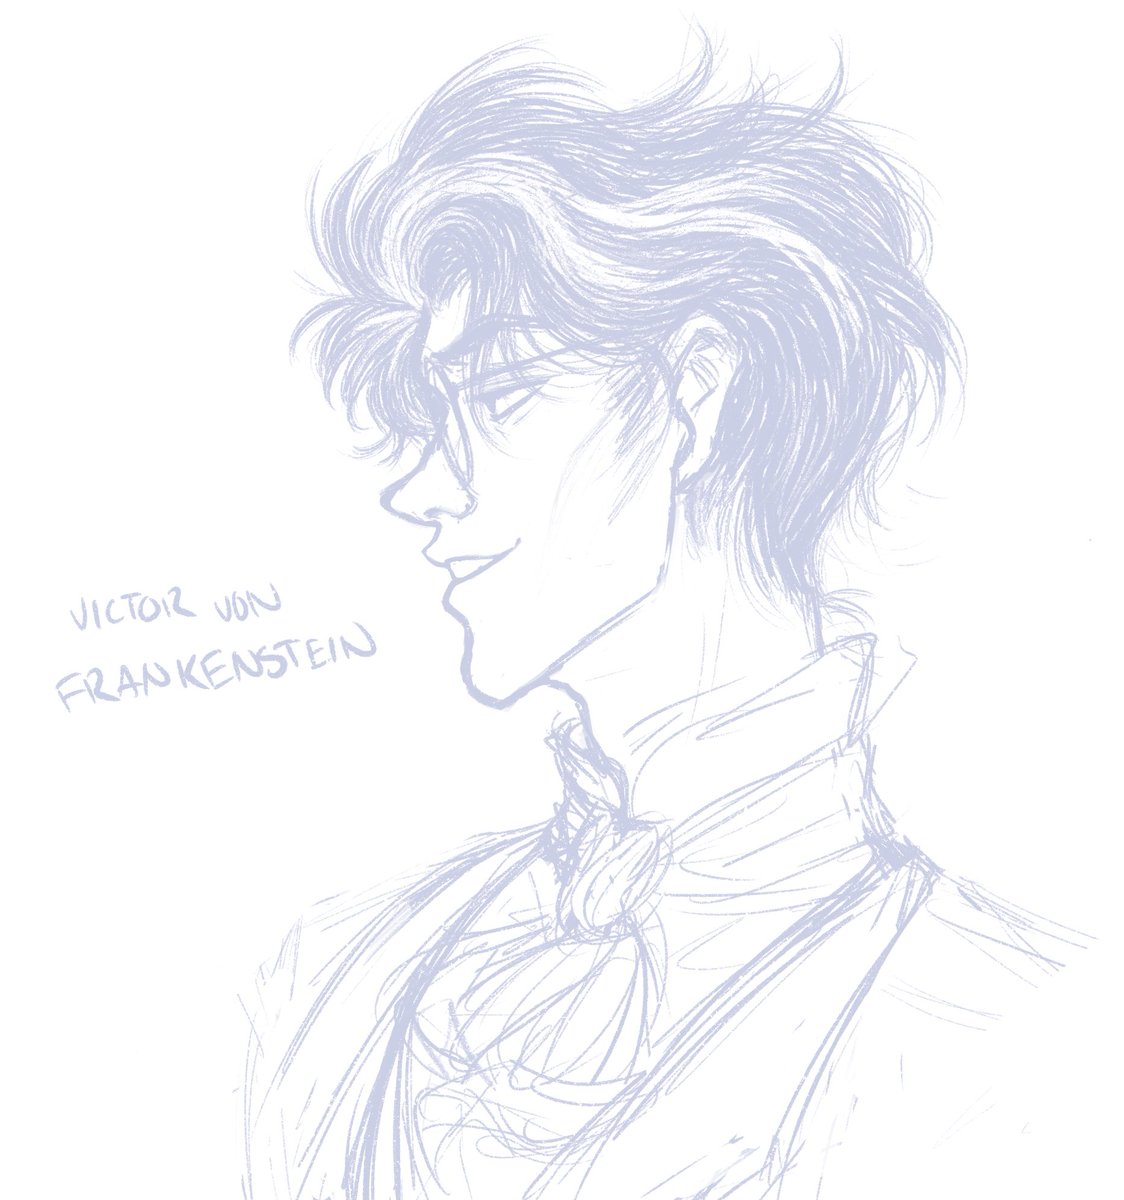 Speaking of this selfish, pretentious devil...  Self-indulgent Victor sketch for y'aLL! Also like lowkey a face study that I might color later, idk  #victorfrankenstein #victor #frankenstein #fanart #ilikehisfaceok #digitalart #art #facestudy pic.twitter.com/9MSNU32Rhf